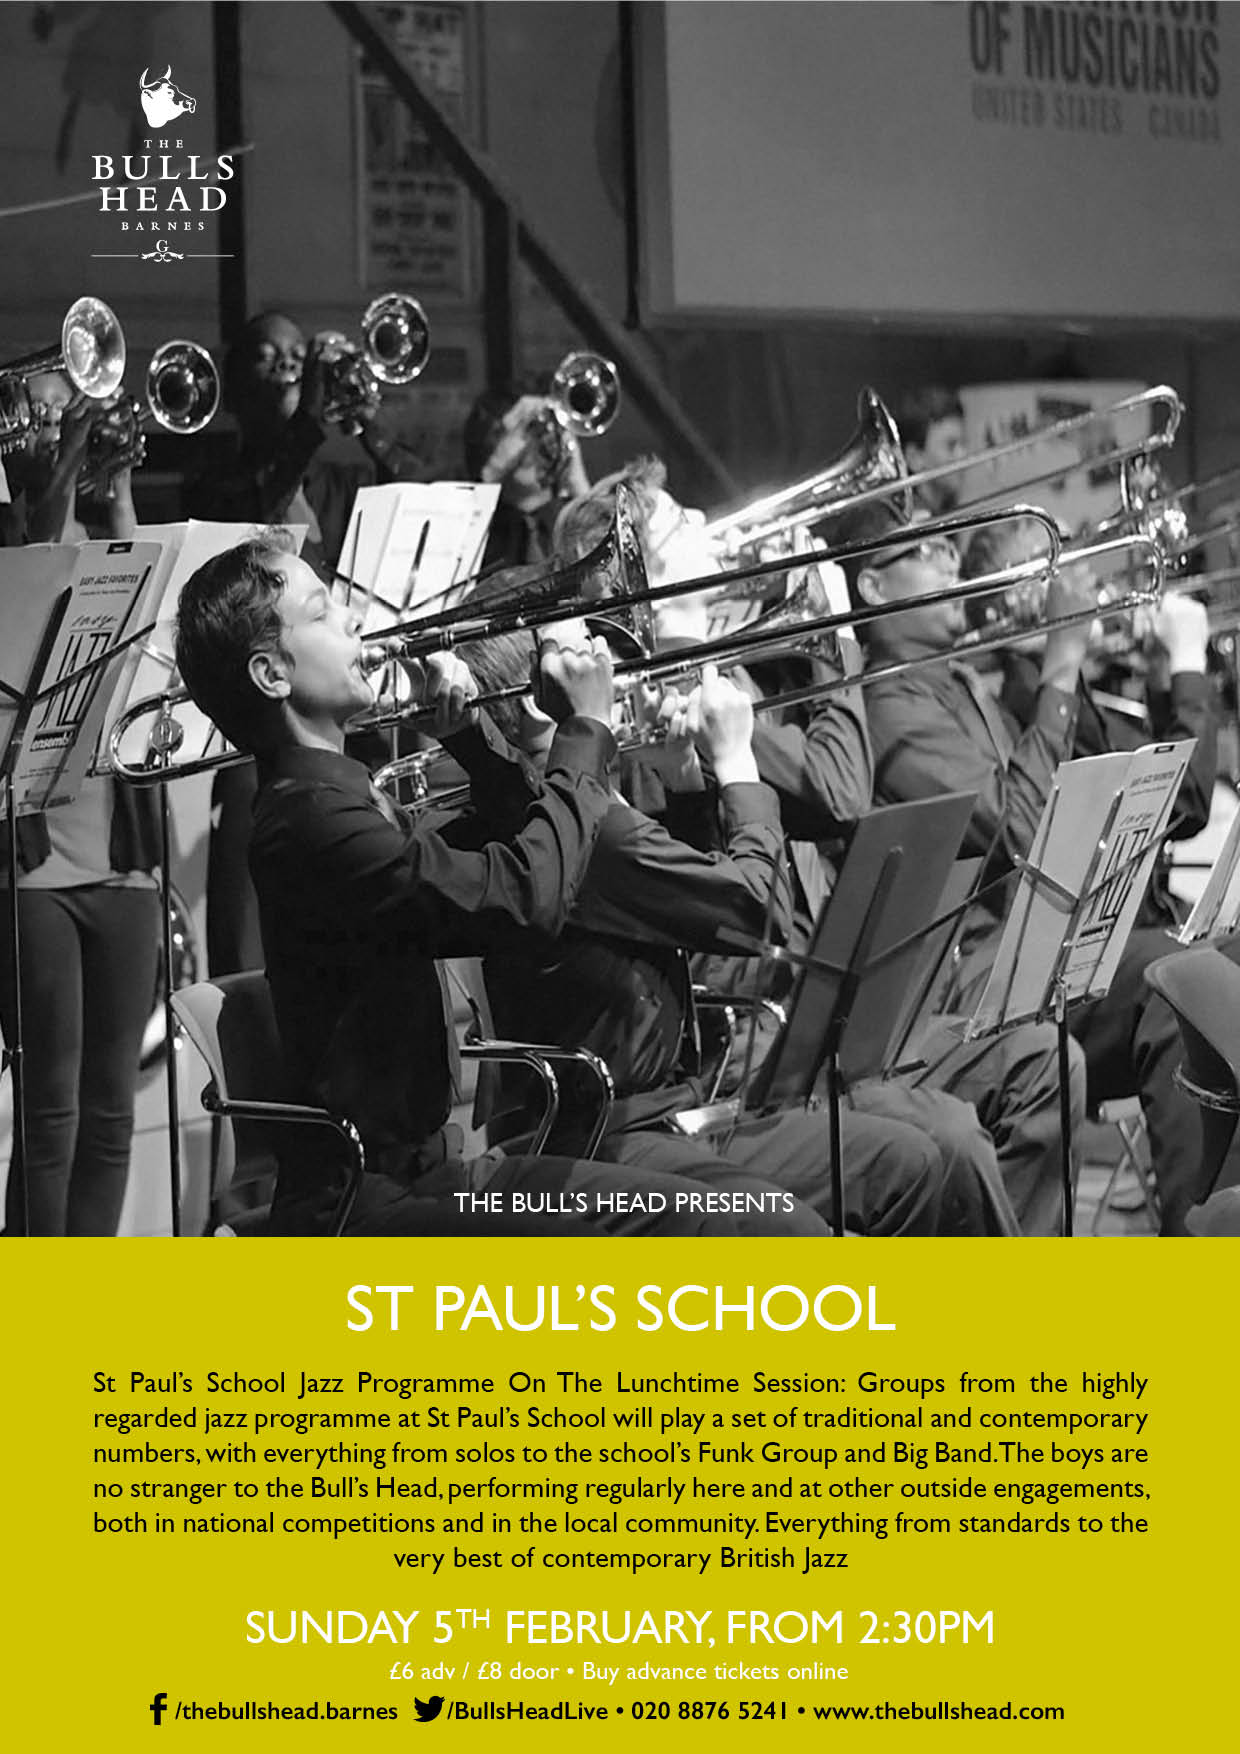 St Paul's School Jazz Programme On The Lunchtime Session